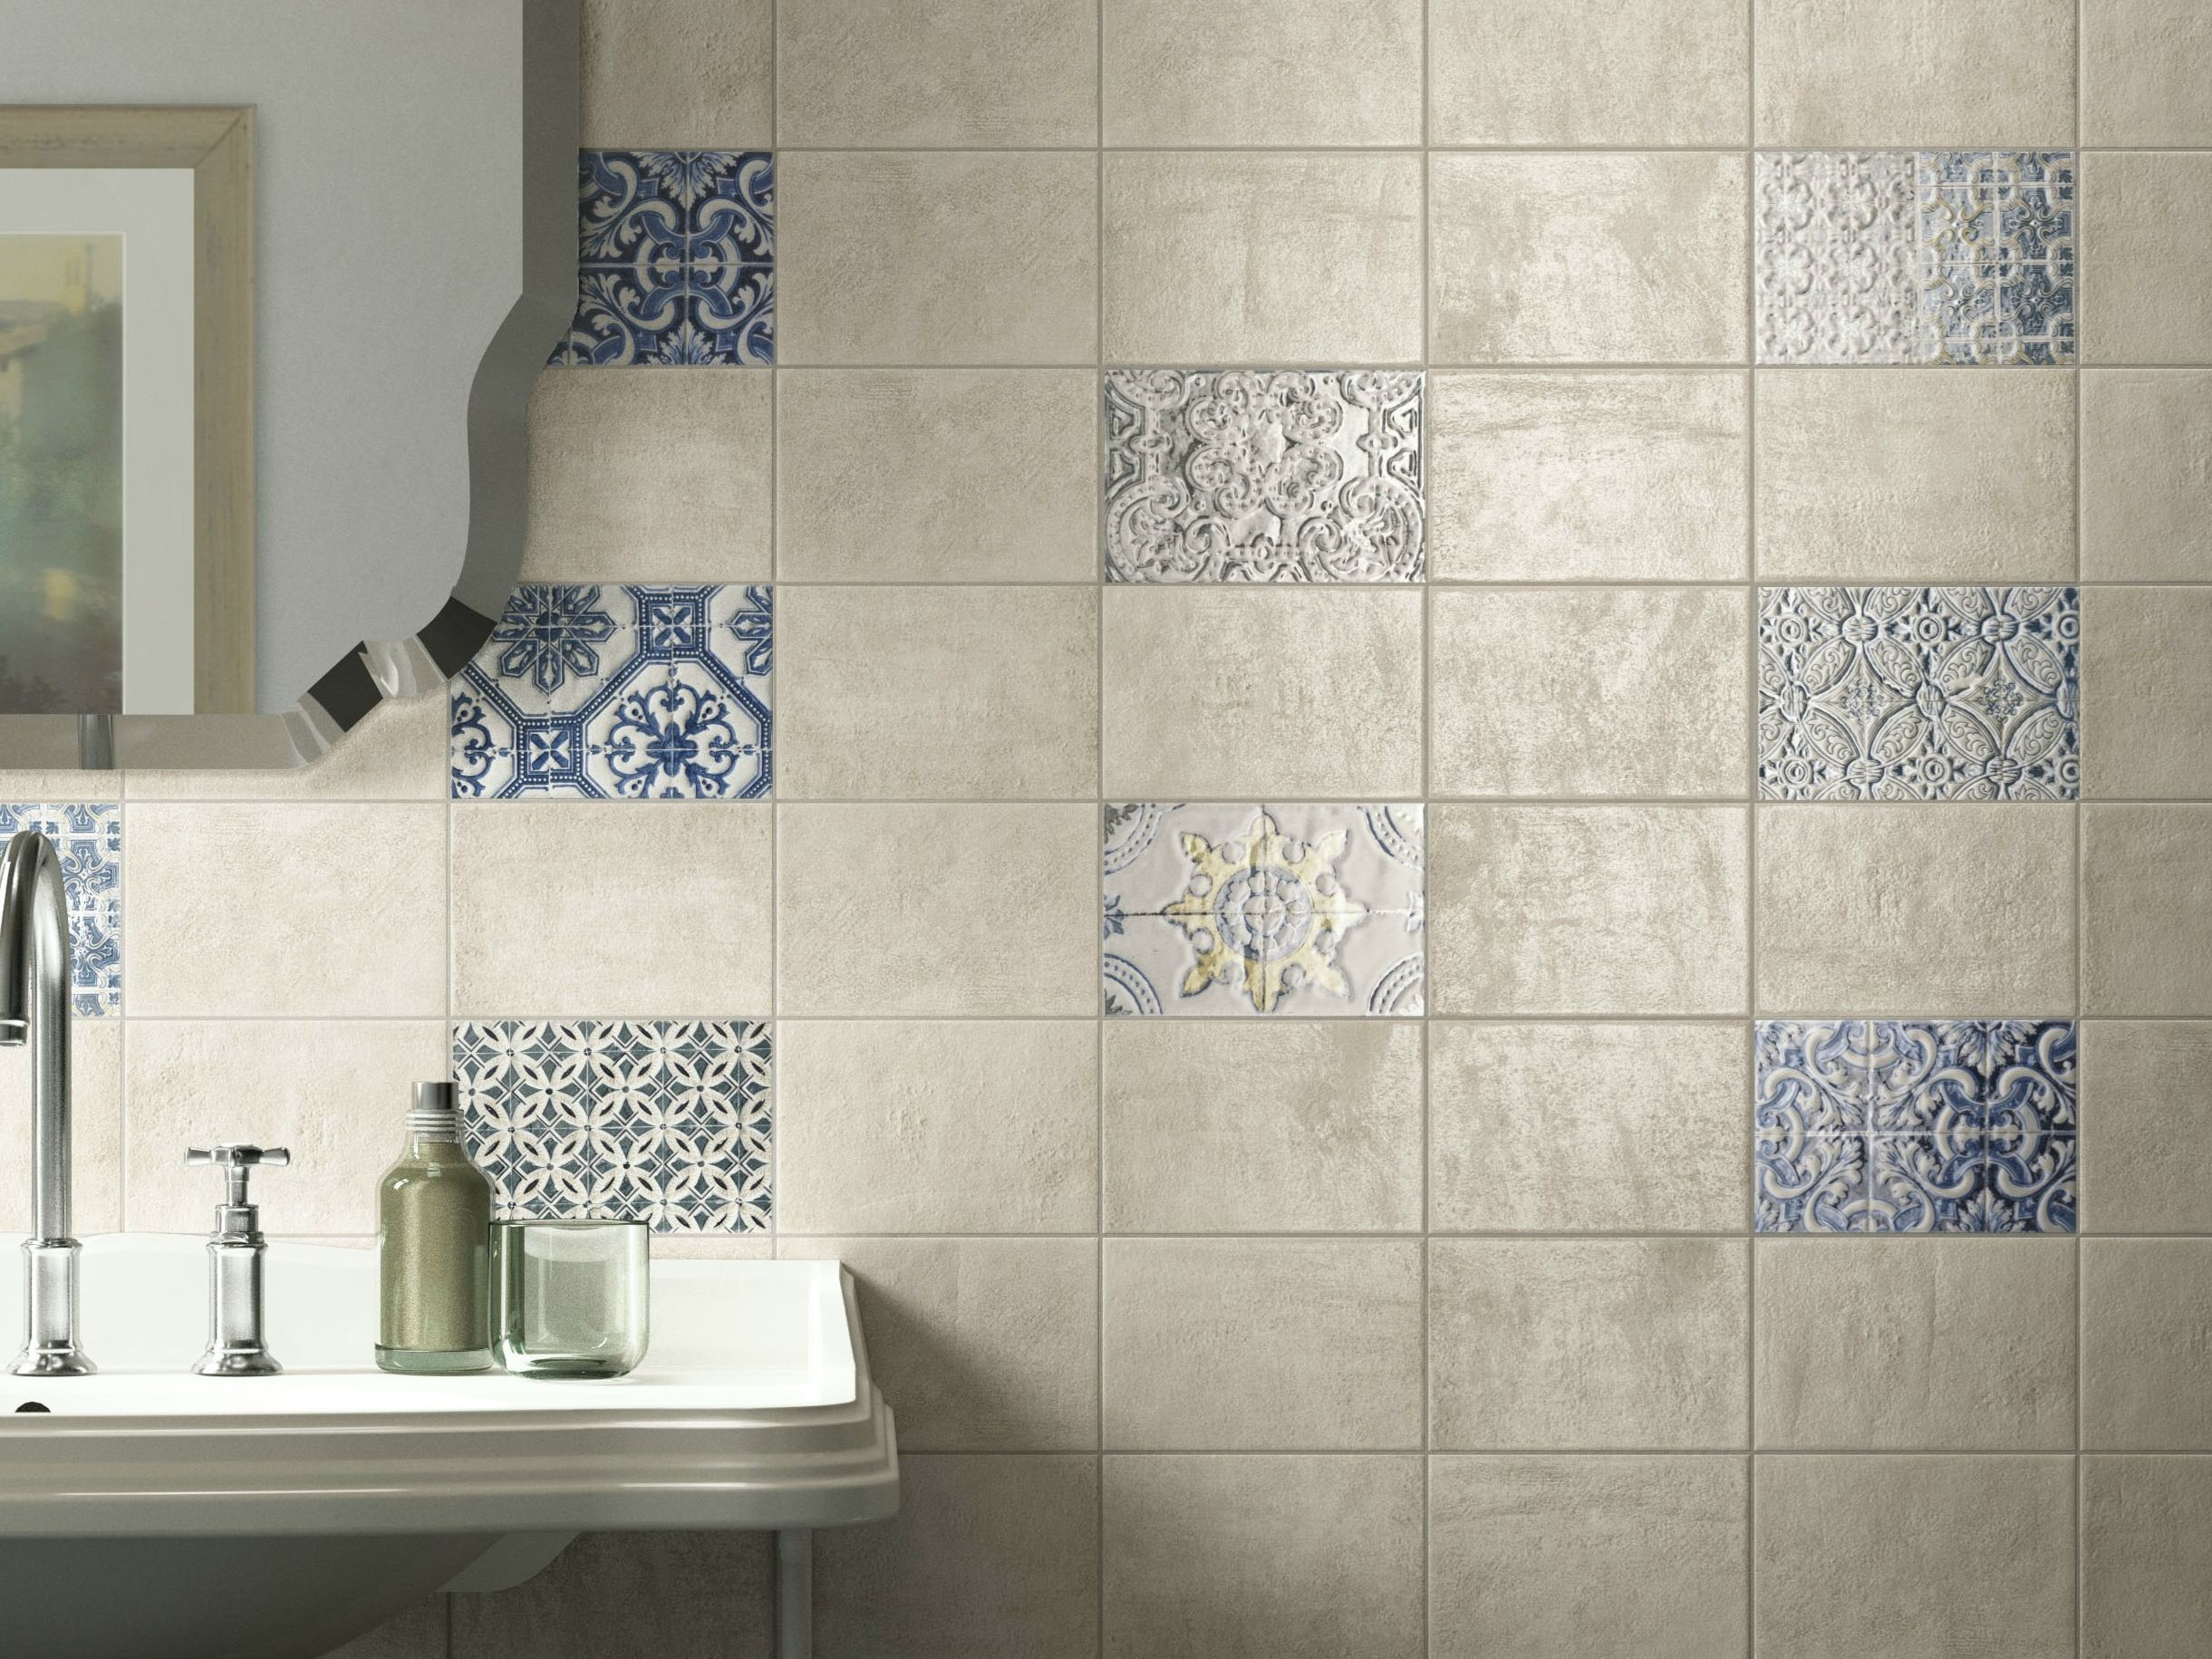 DOUBLE-FIRED CERAMIC WALL TILES VIA VENETO BY COOPERATIVA CERAMICA D'IMOLA